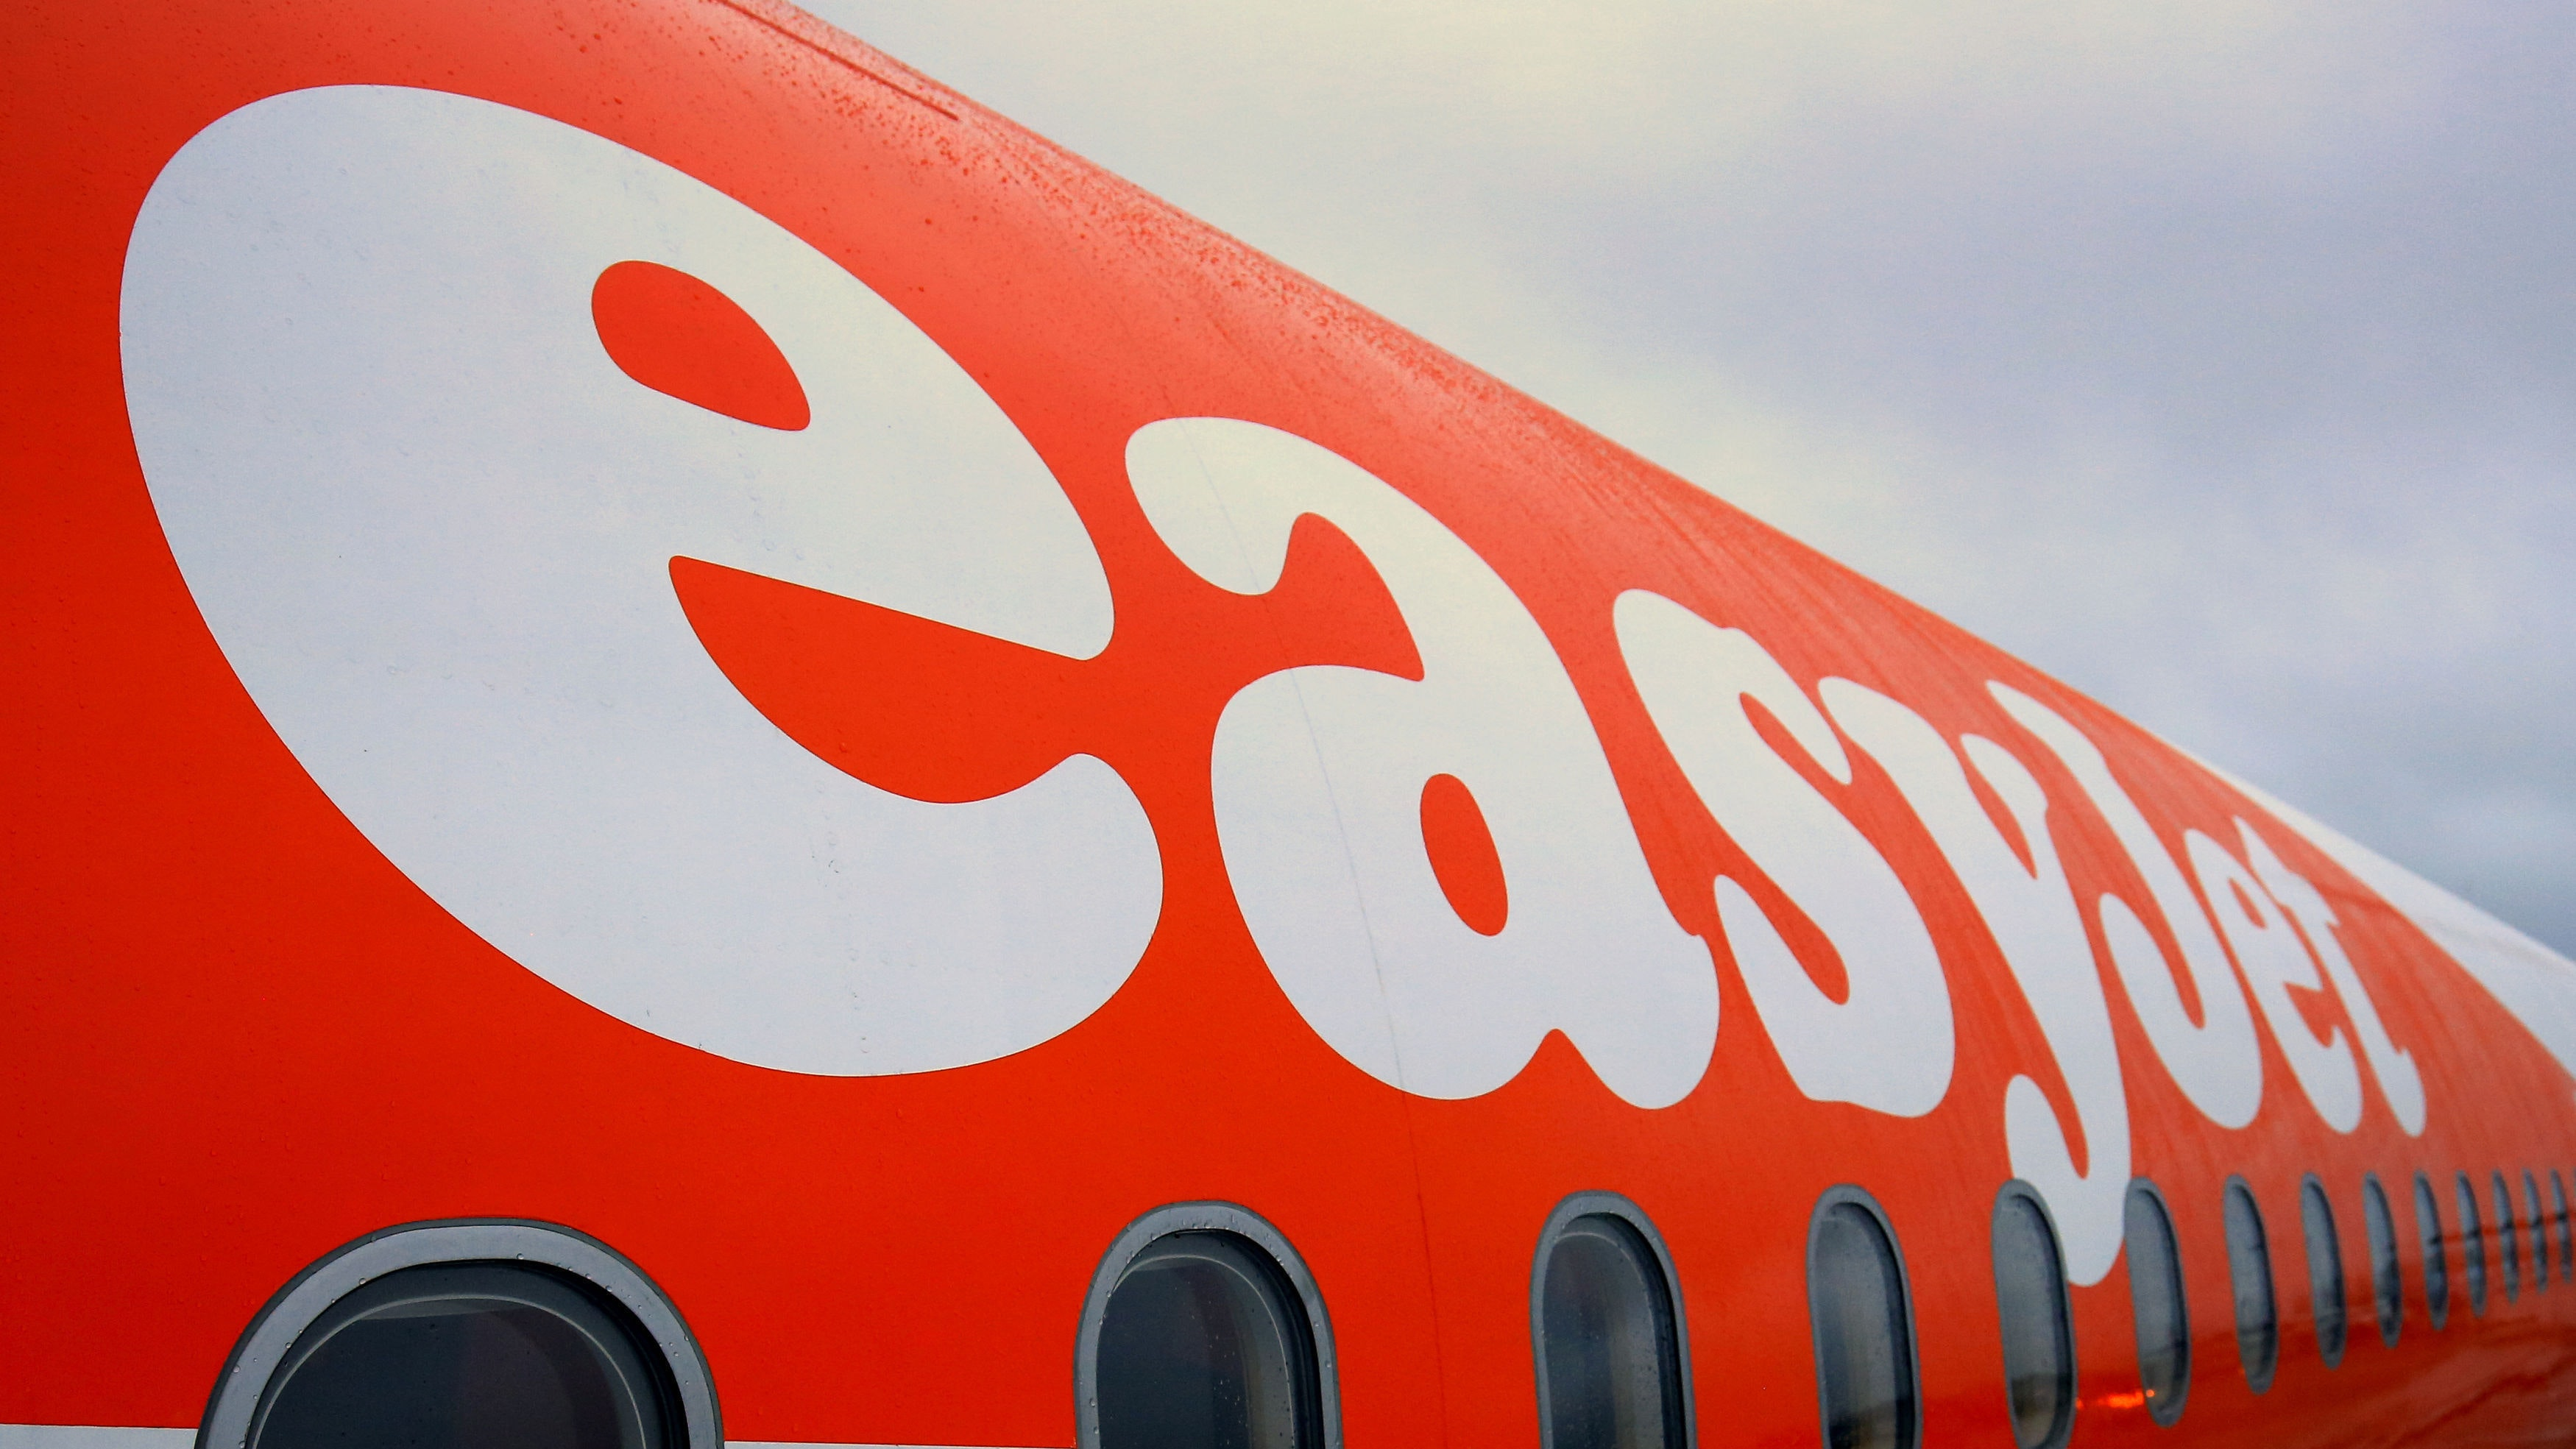 Lift-off for easyJet shares as rival airlines struggle